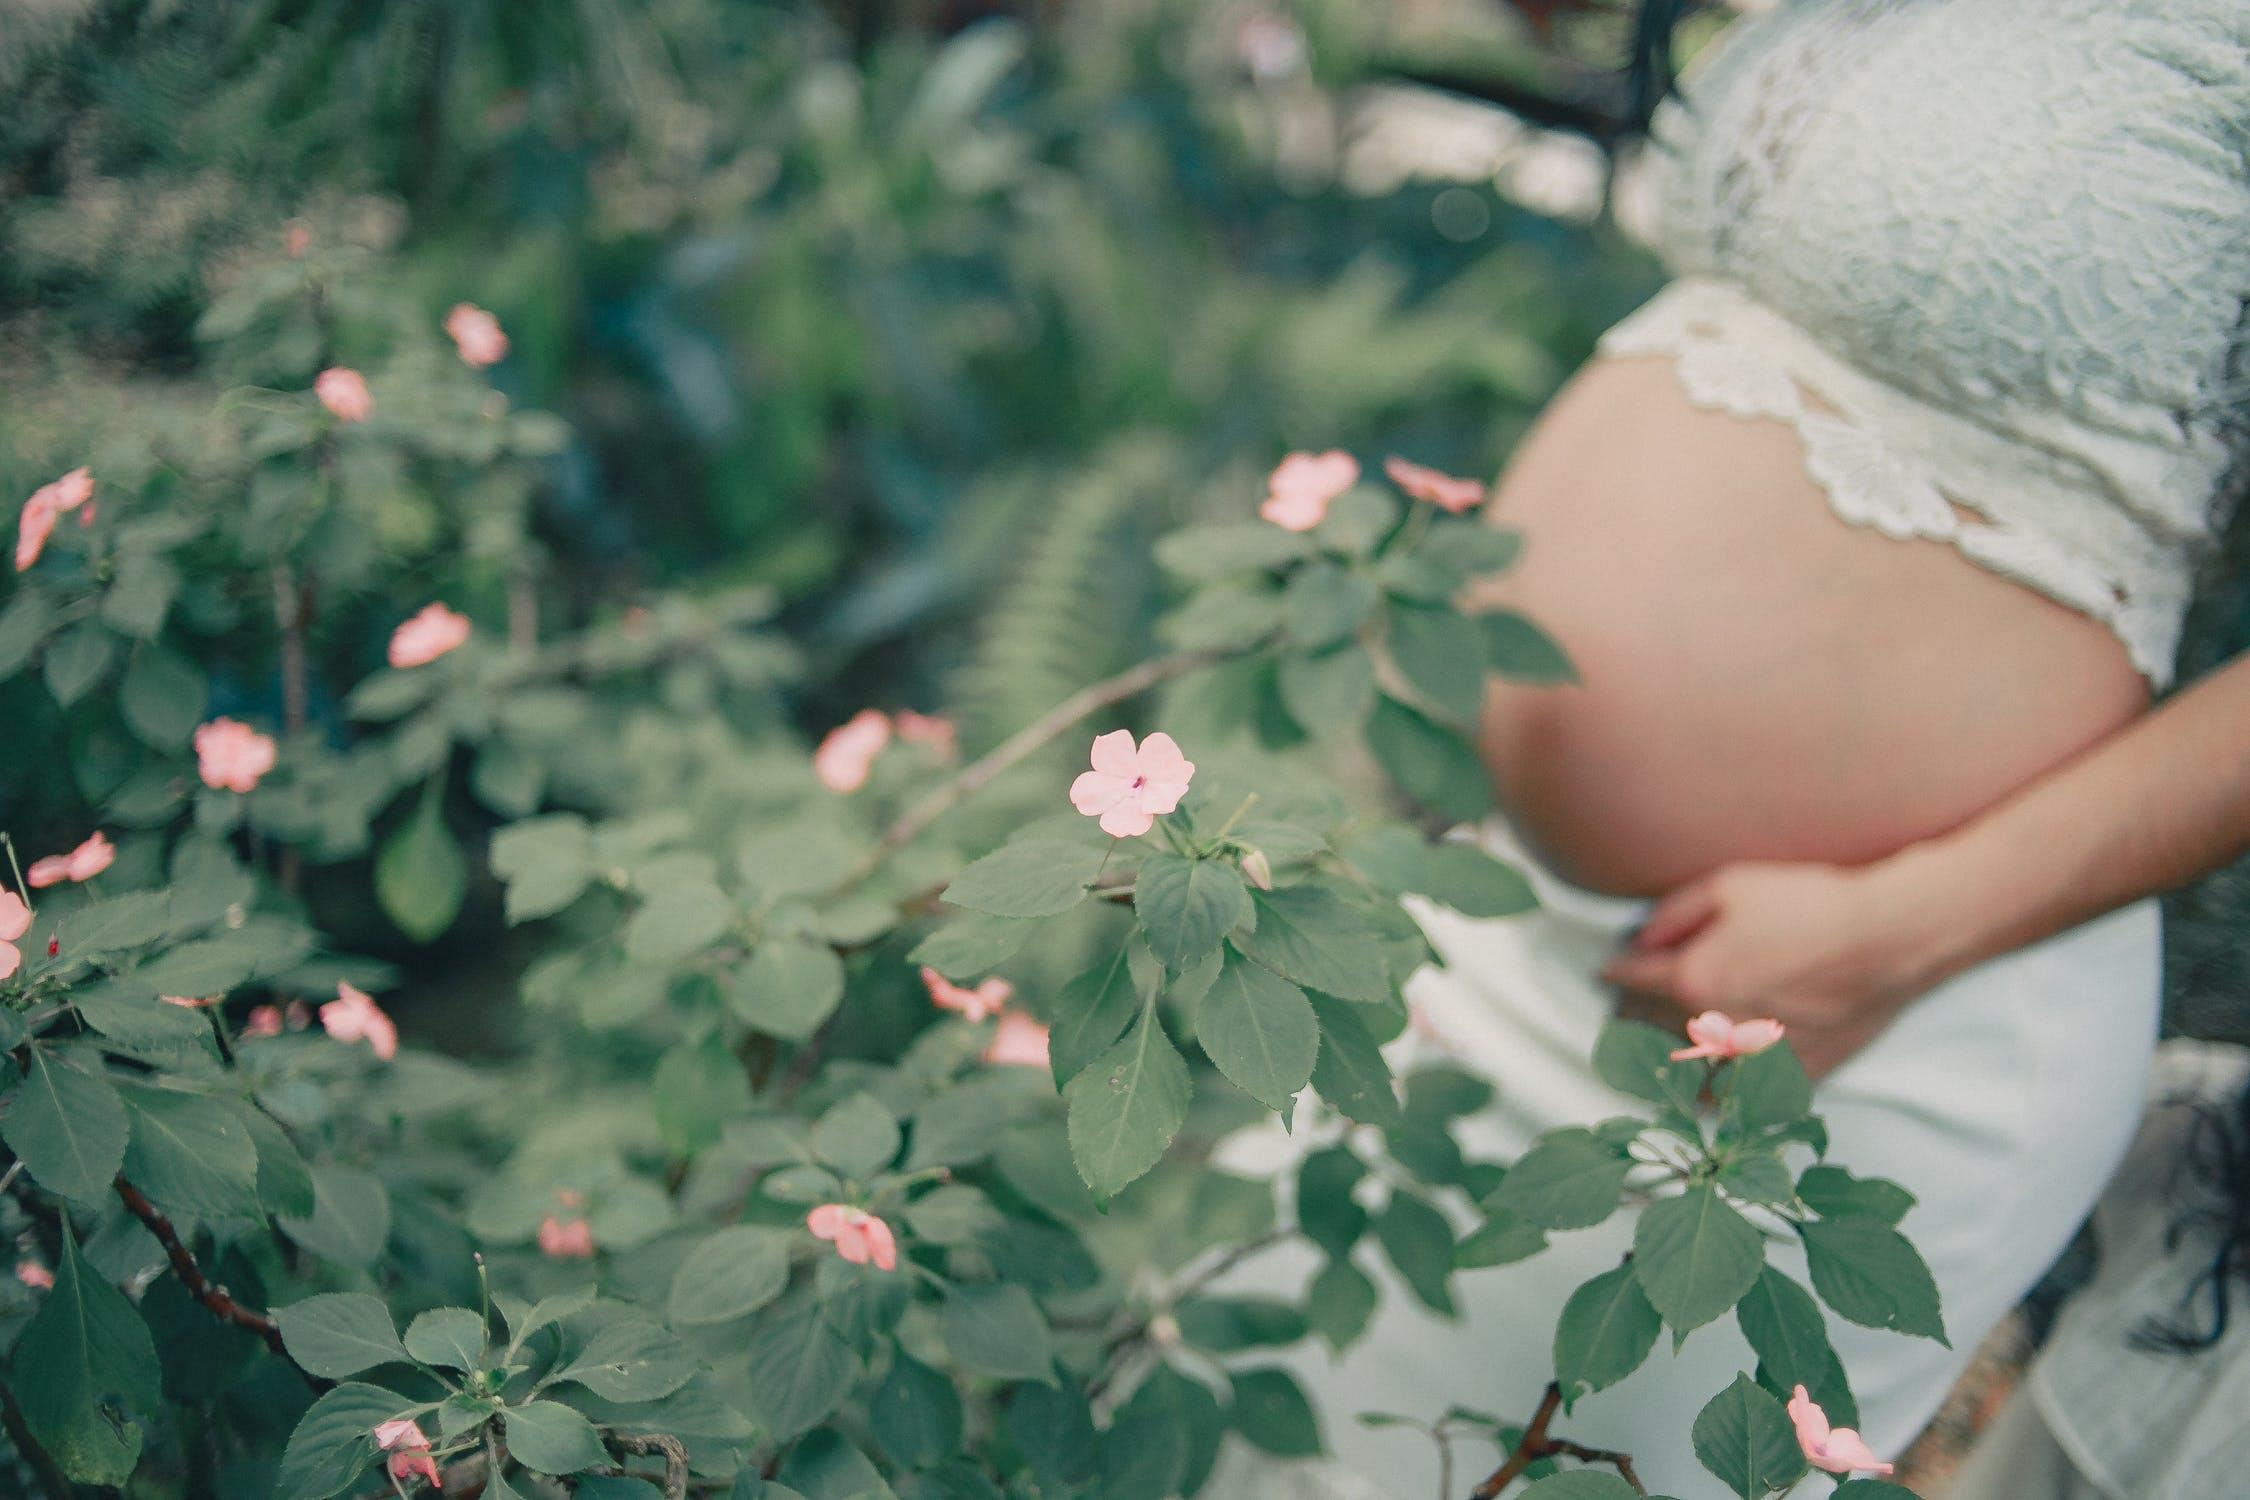 How Many Mothers Can a Child Have Surrogacy?